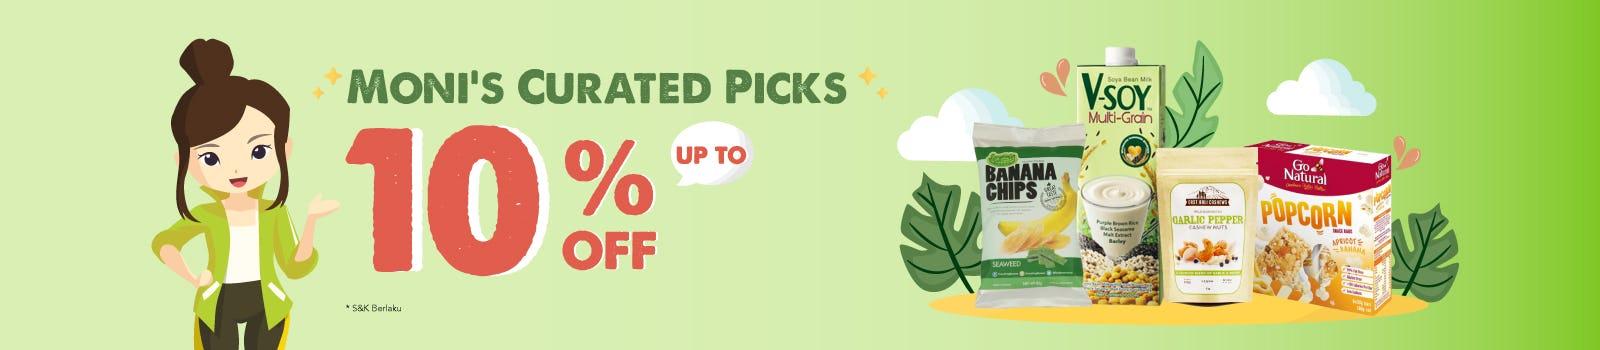 Moni's Curated Picks Up To 10% OFF